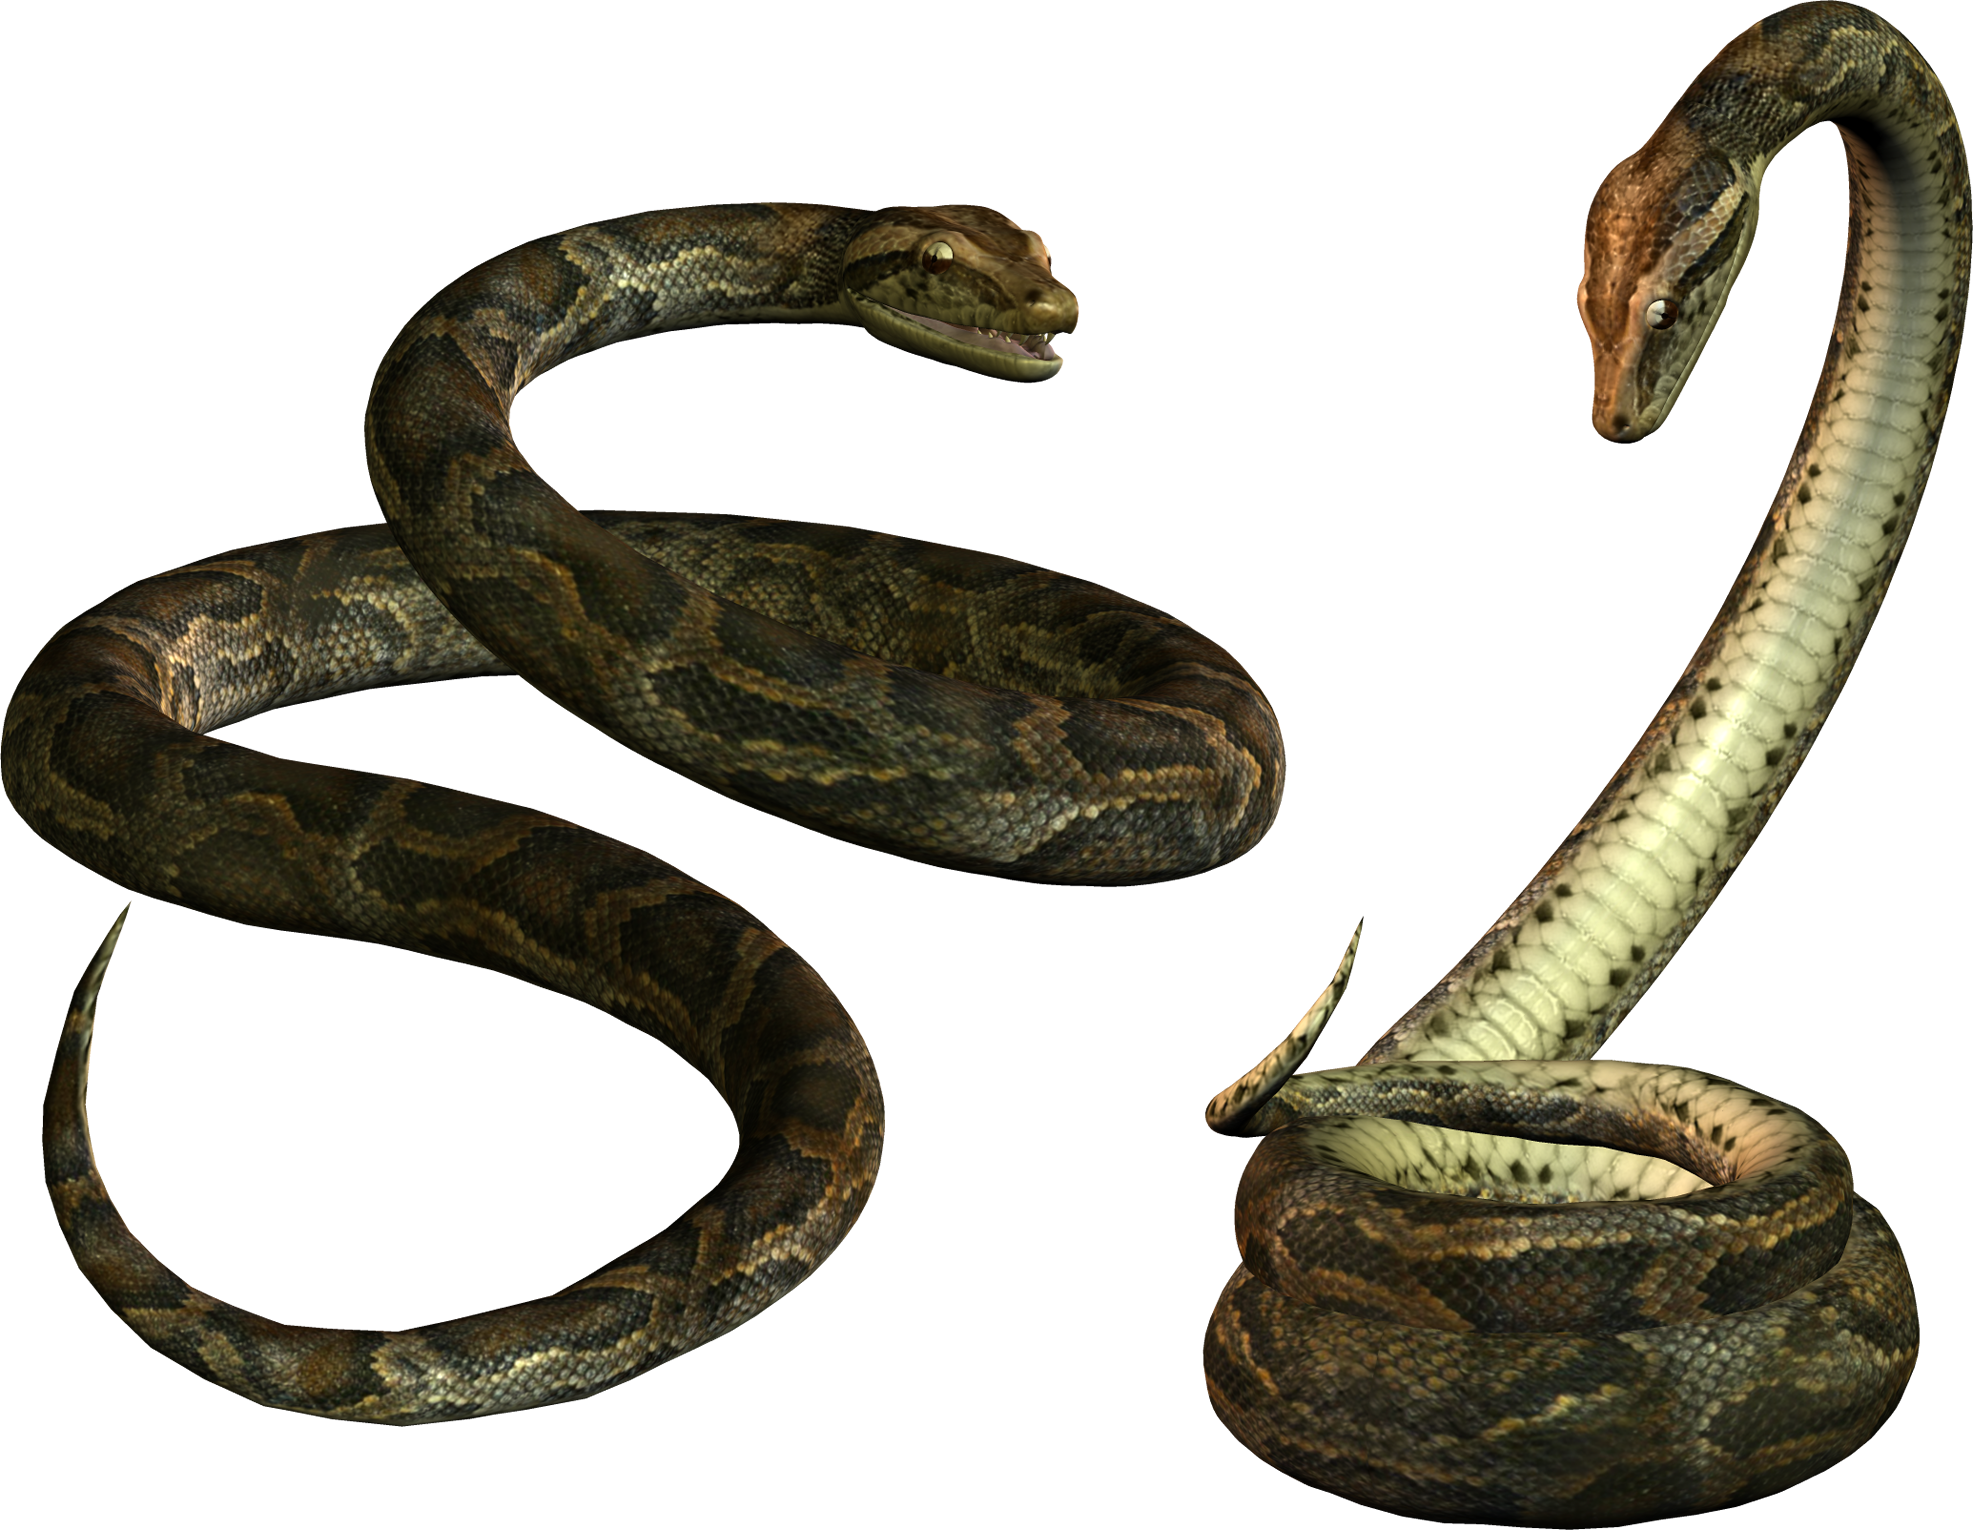 Snake HD PNG - 92995